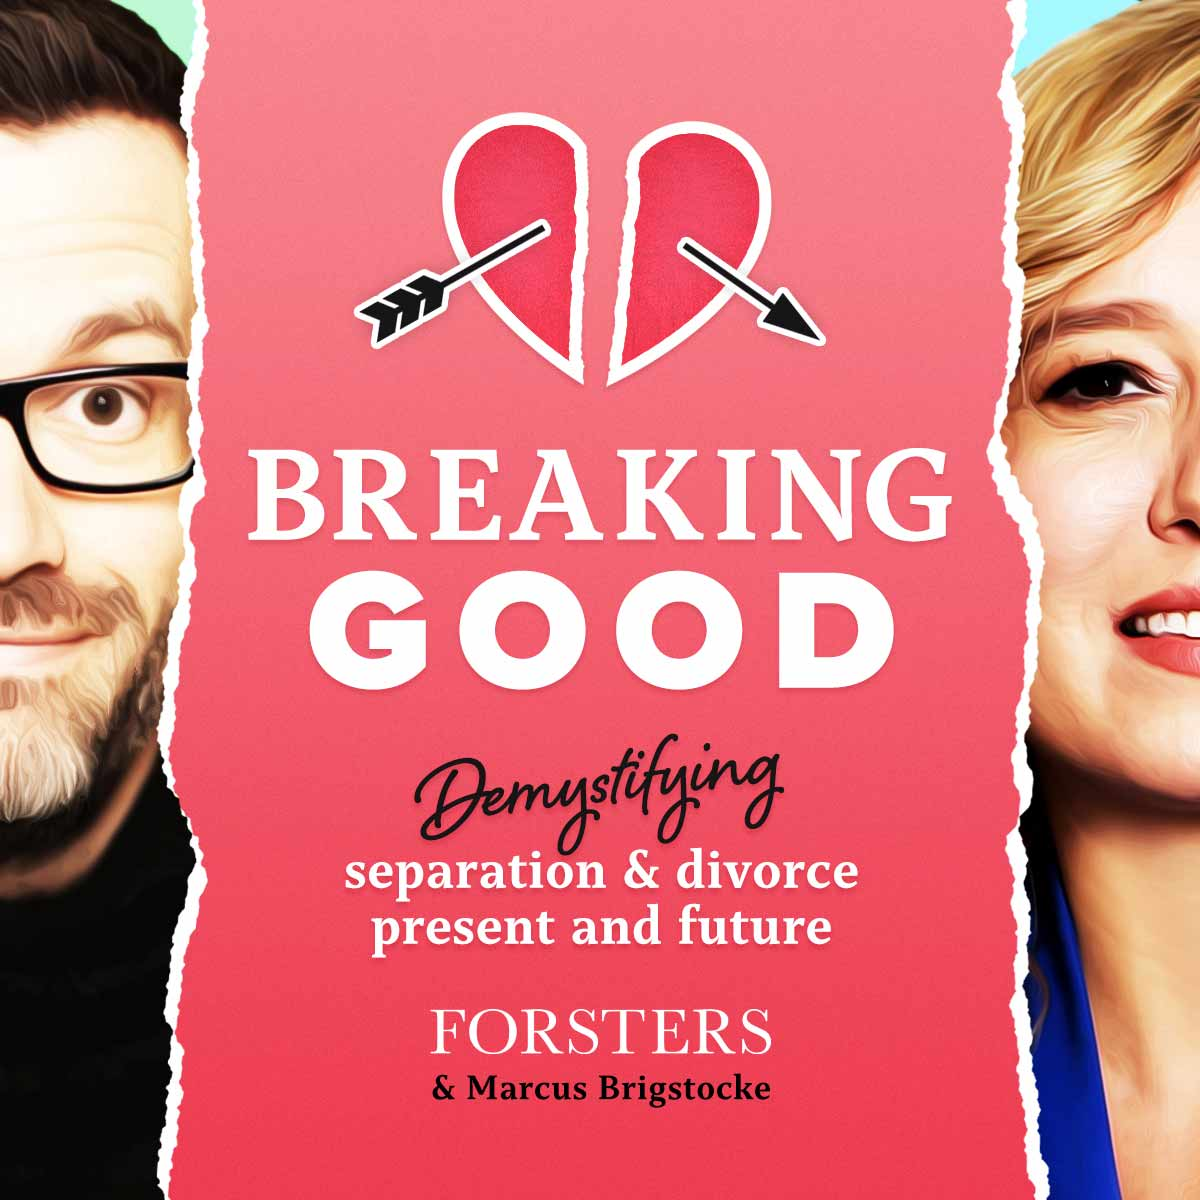 Breaking Good - Rethinking Separation and Divorce podcast graphic